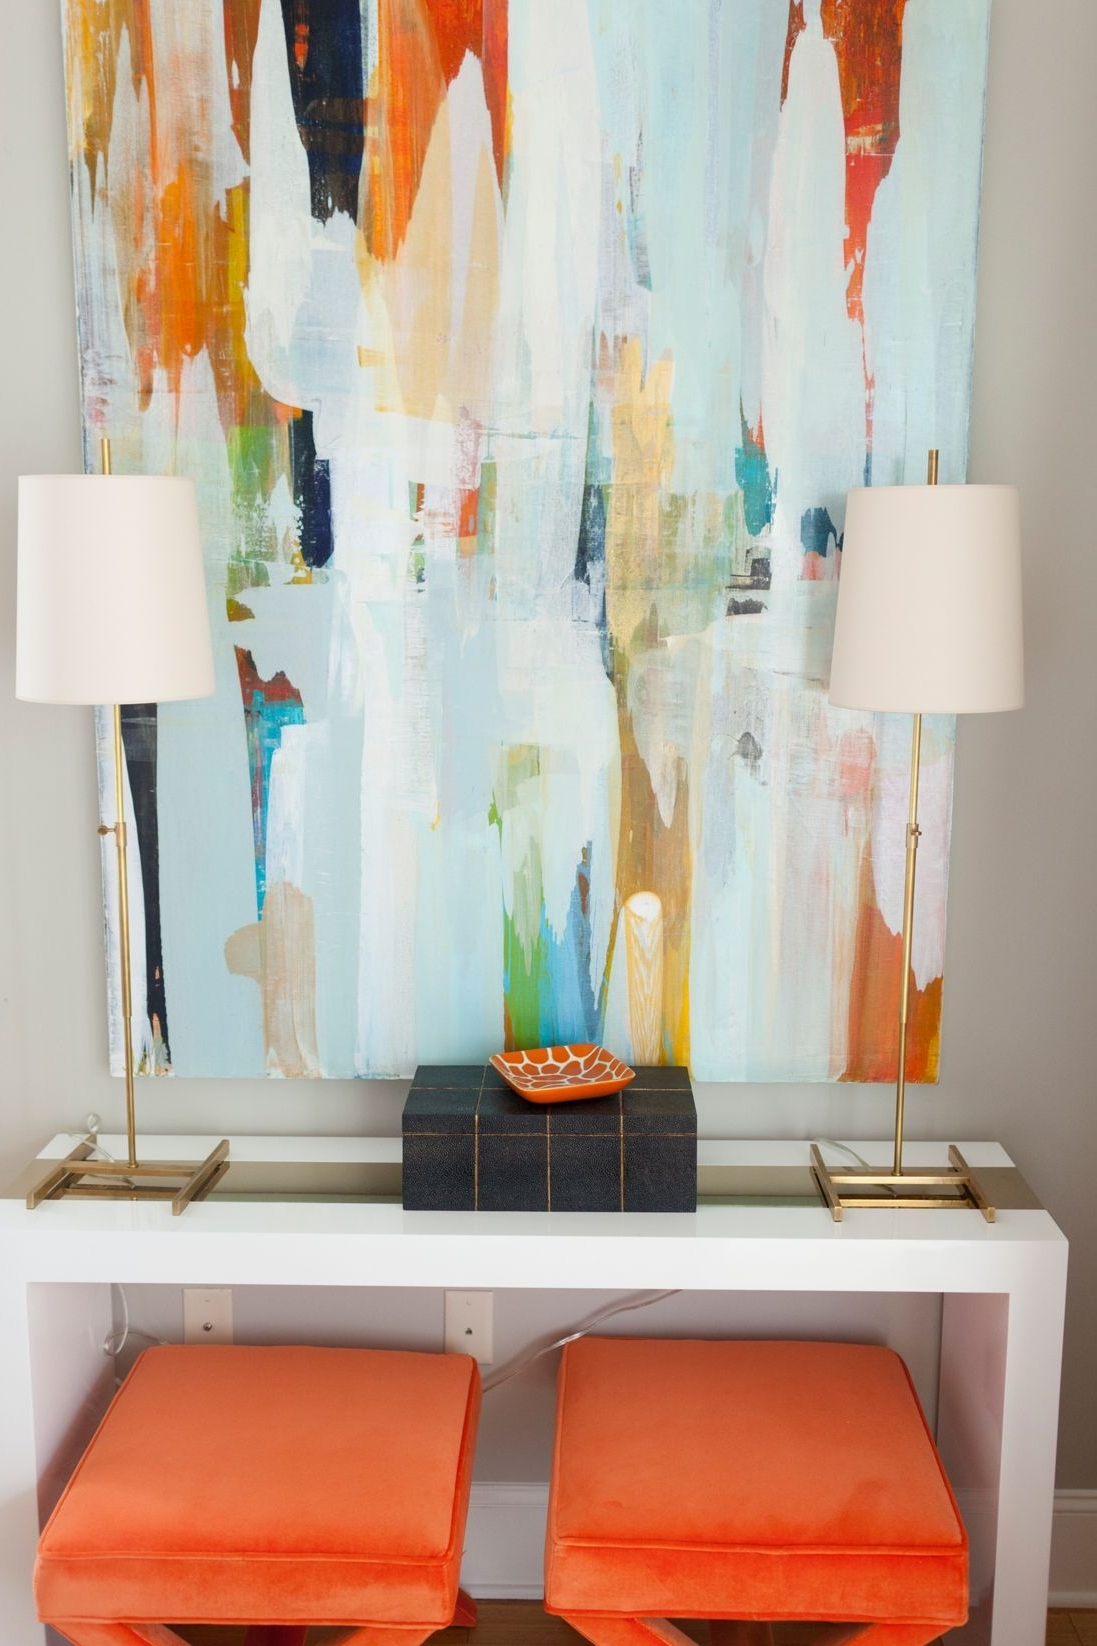 Pinterest Pertaining To Orange And Turquoise Wall Art (View 10 of 15)